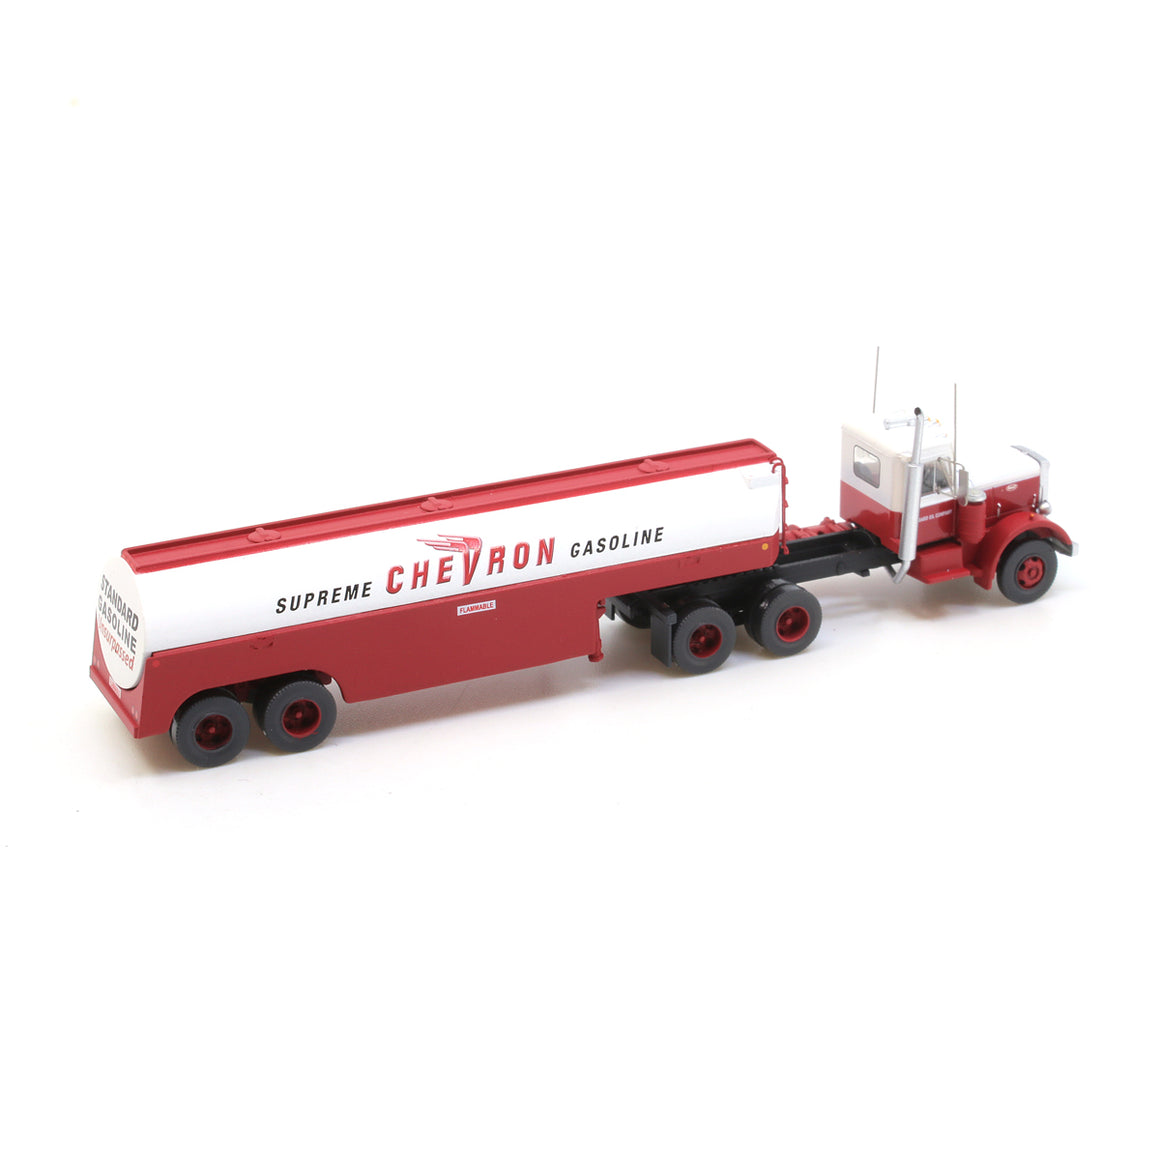 N Scale: Peterbilt 351 with Fuel Tank Trailer - Chevron